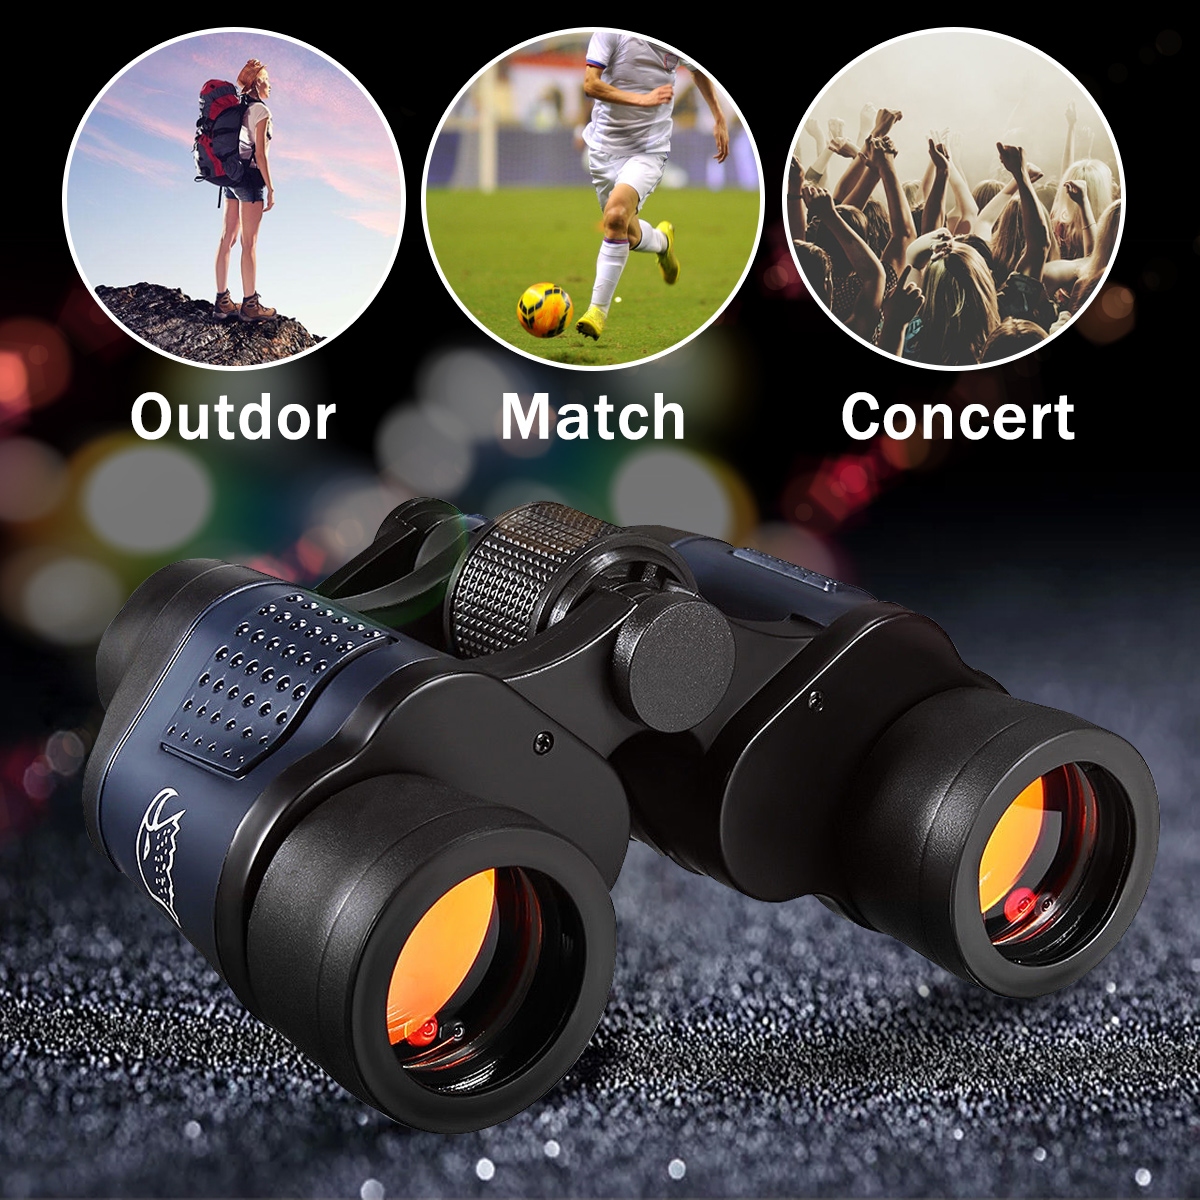 Night Vision 60x60 3000M High Definition Outdoor Hunting Binoculars Telescope HD Waterproof For Outdoor Hunting new 60x60 optical telescope night vision binoculars high clarity 3000m binocular spotting scope outdoor hunting sports eyepiece